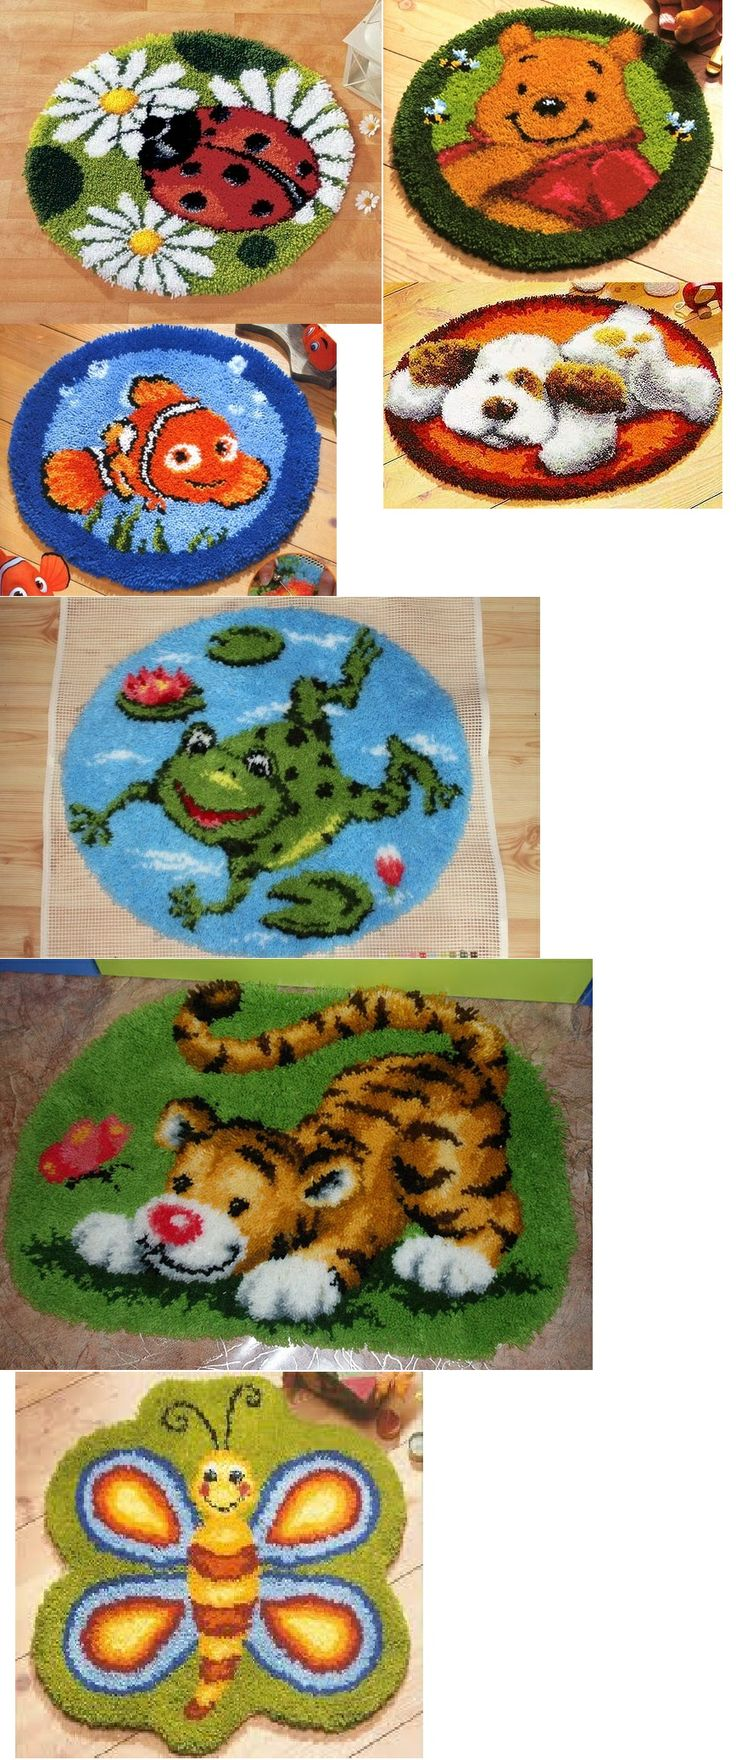 17 best images about alfombras y tapices on pinterest for Alfombras infantiles